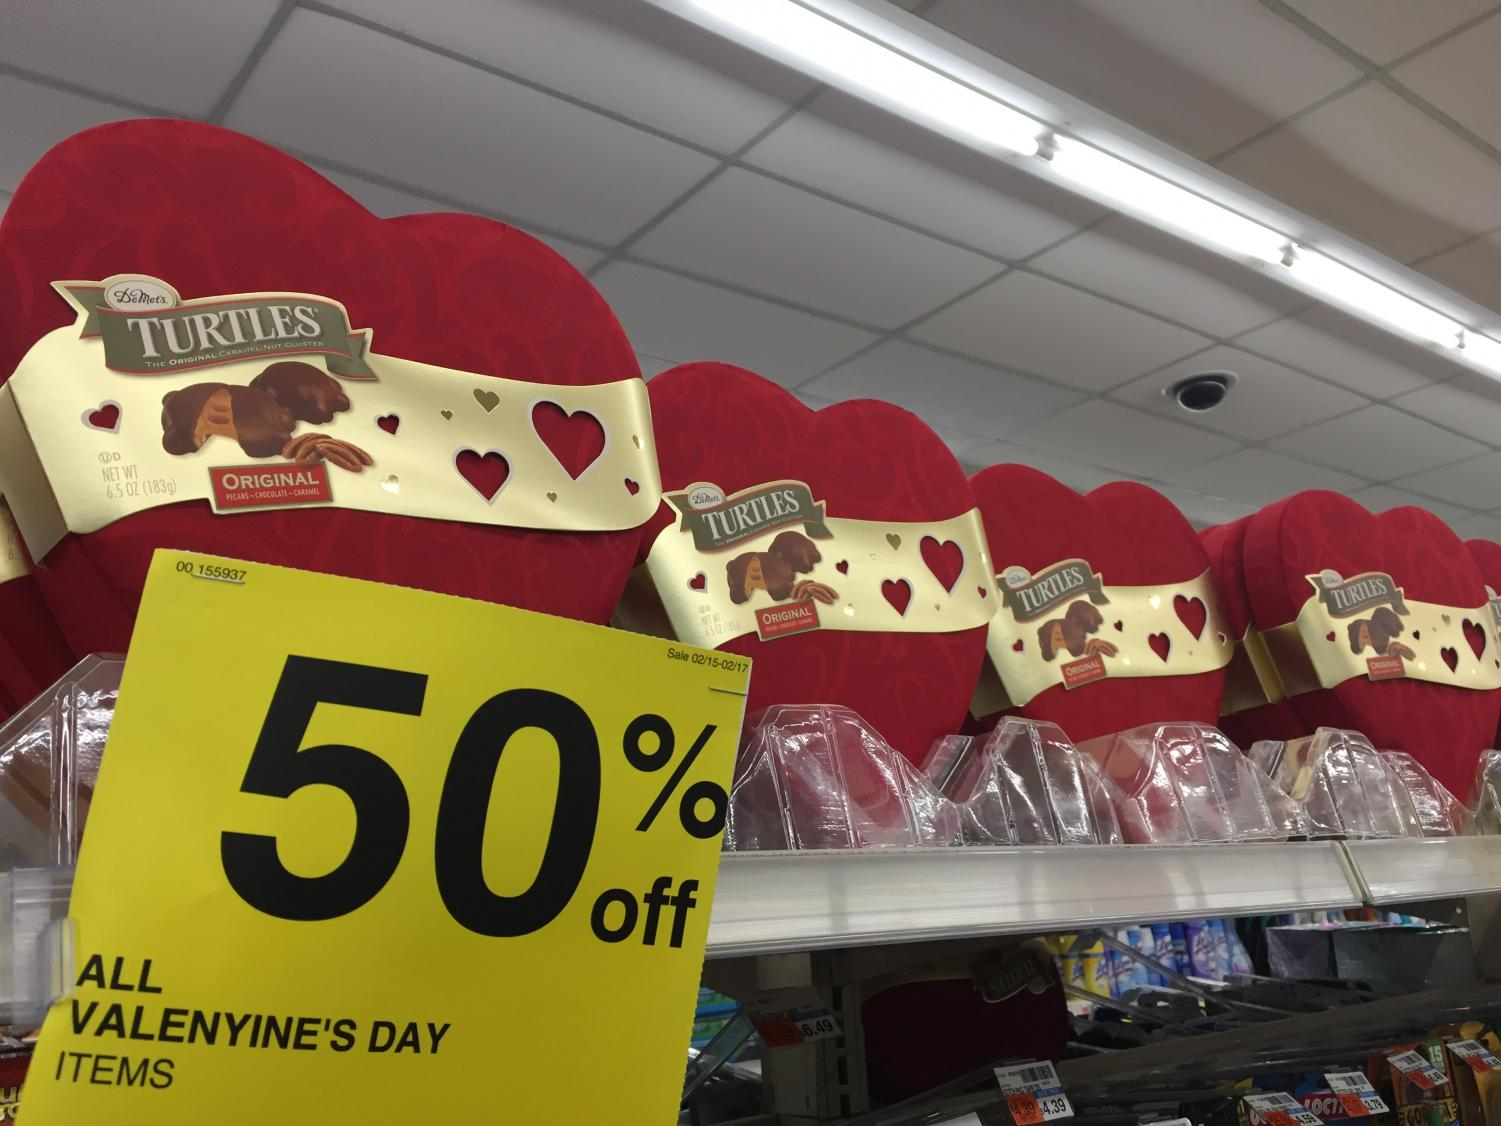 While Valentine's Day spending is in the billions, manufacturers tend to overproduce leading to mass sales shortly after the holiday. Teens opt to spend their money on new traditions such as Galentine's Day.